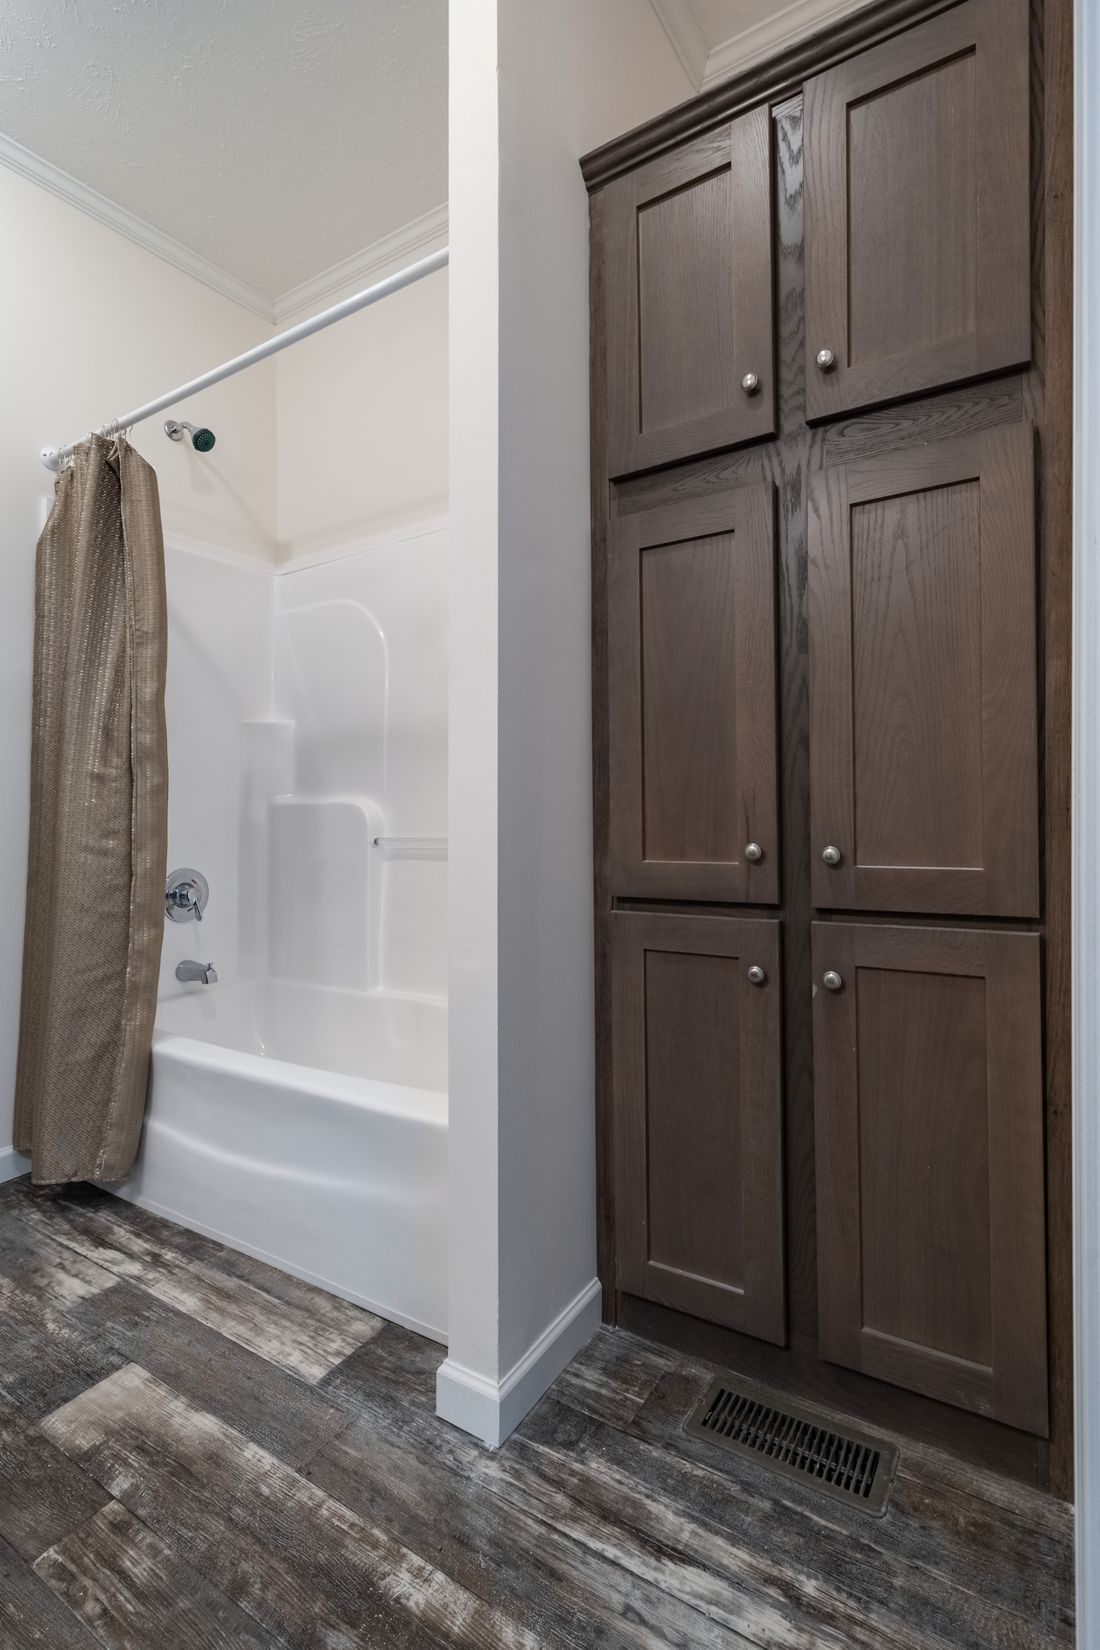 The 4058 ELITE PLUS 6216 Master Bathroom. This Manufactured Mobile Home features 2 bedrooms and 2 baths.